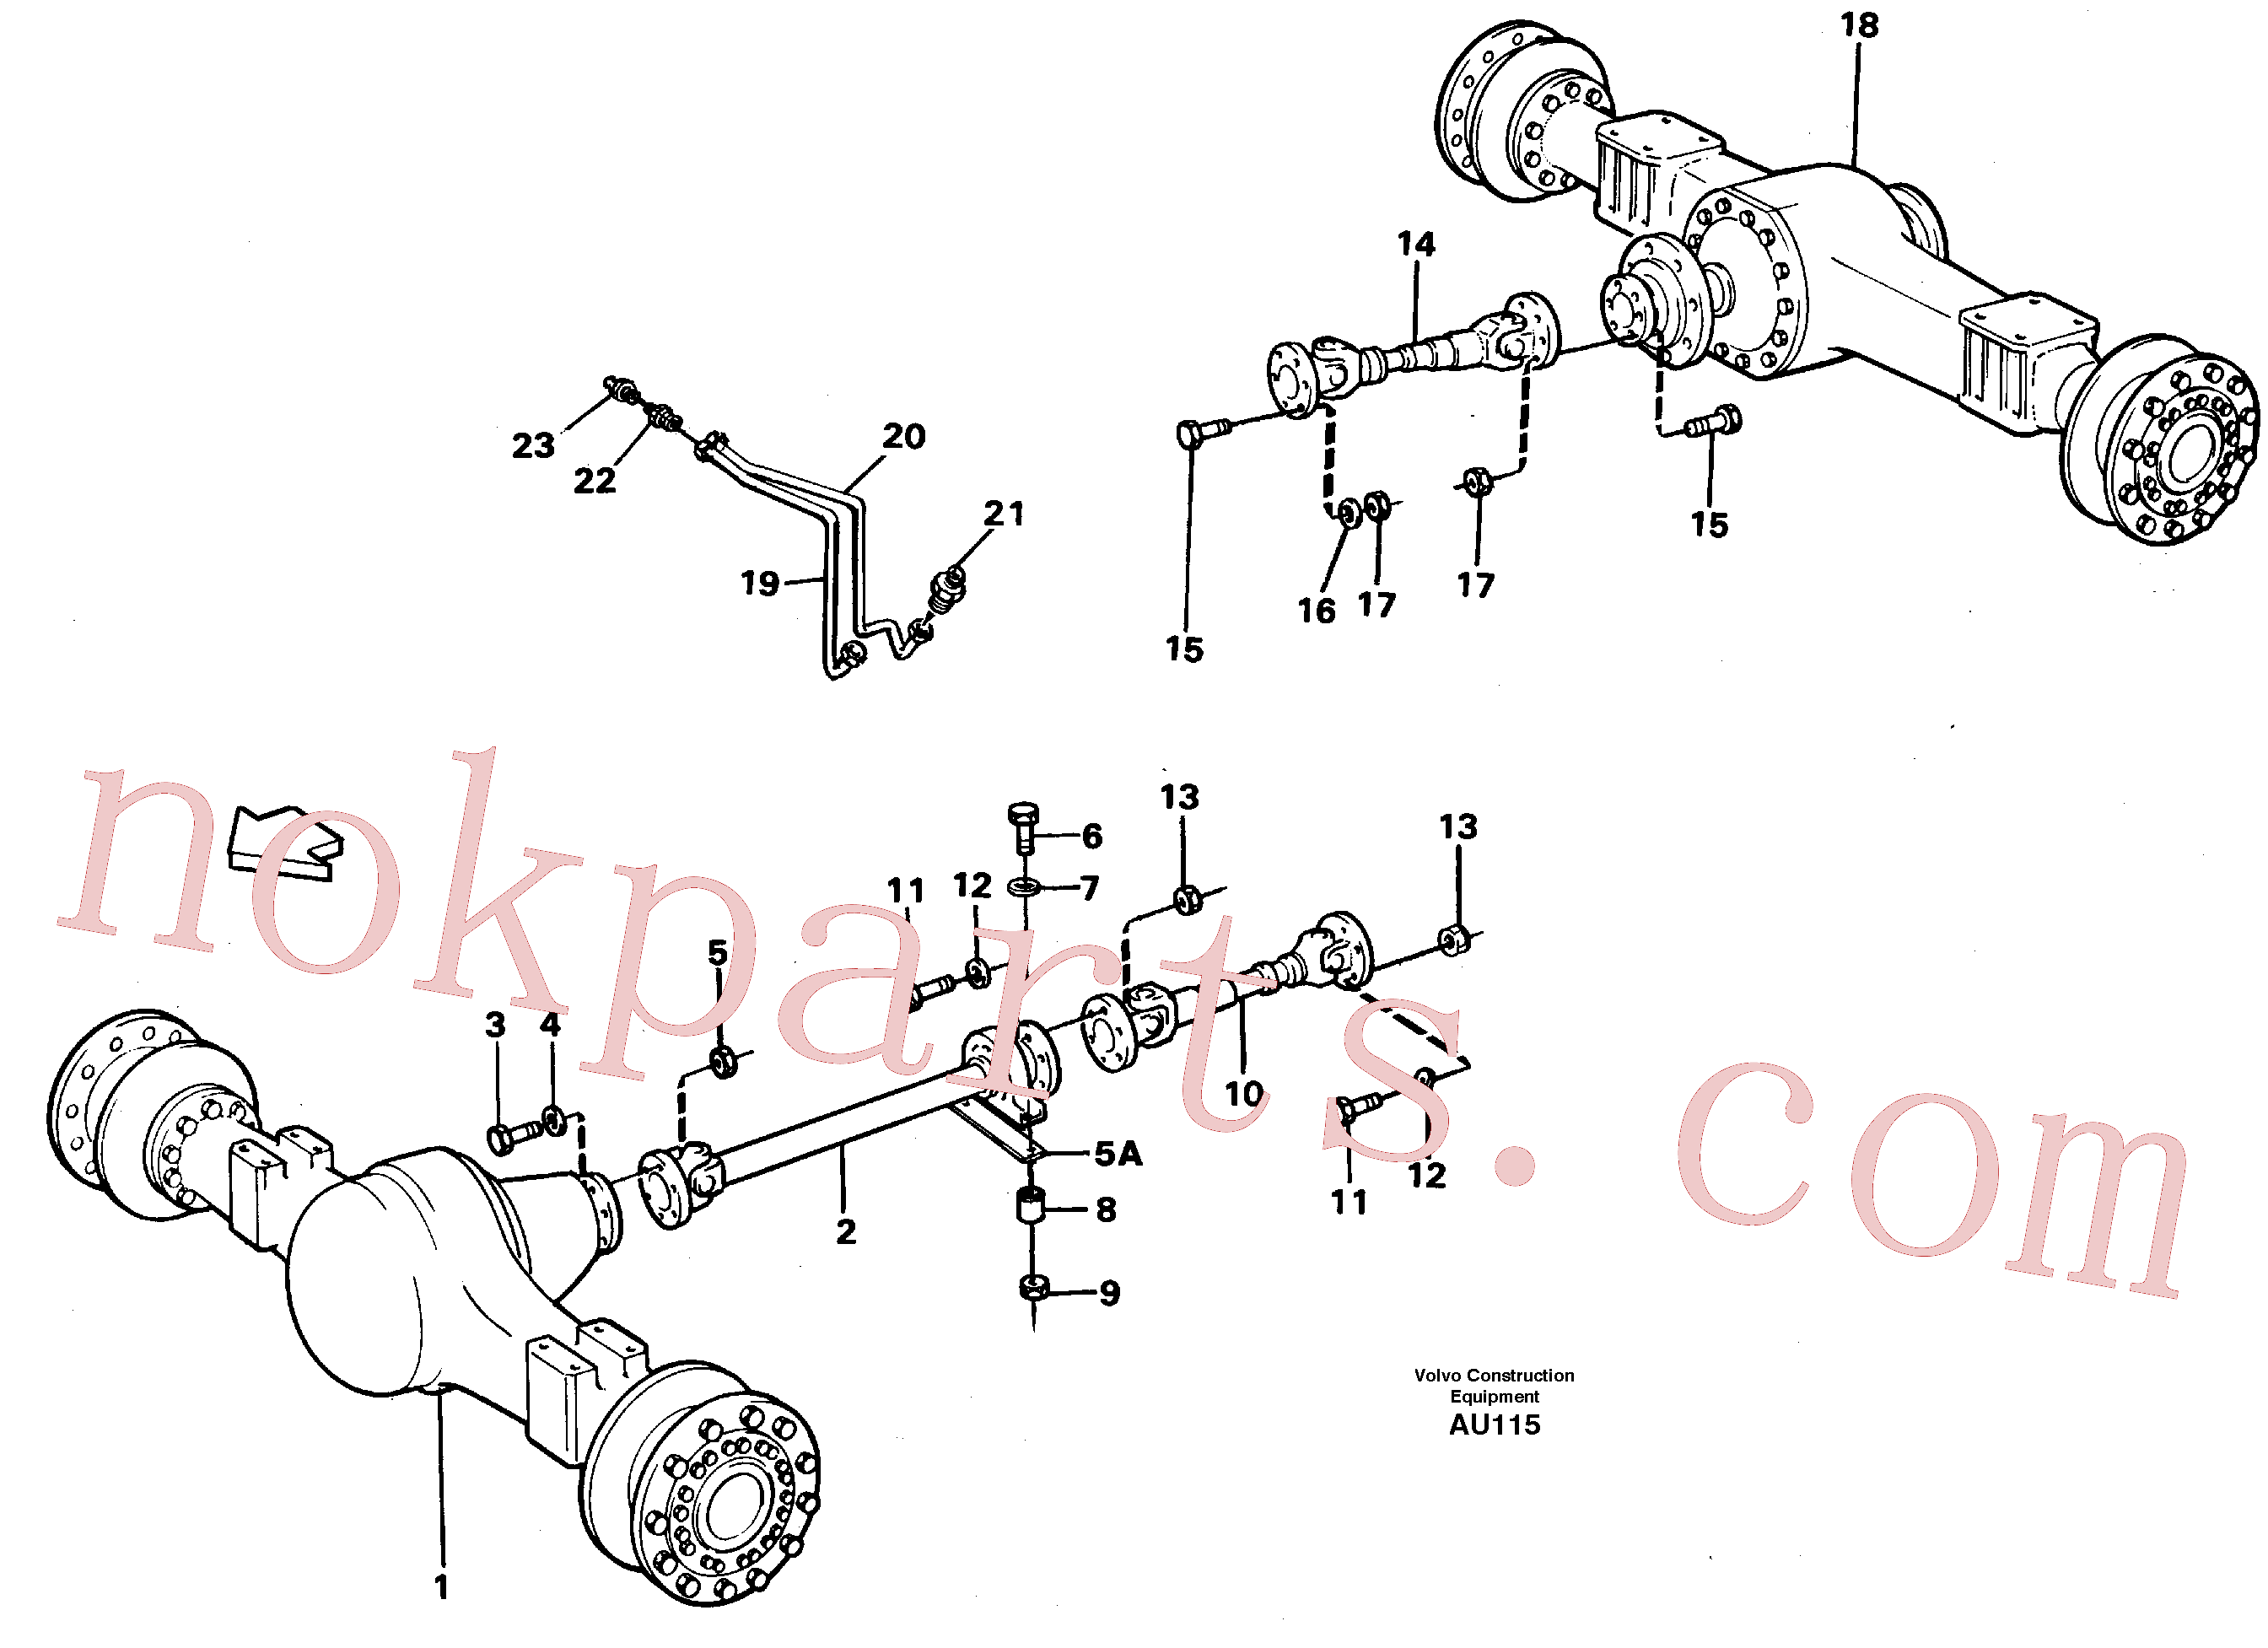 VOE11172120 for Volvo Propeller shafts with fitting parts(AU115 assembly)